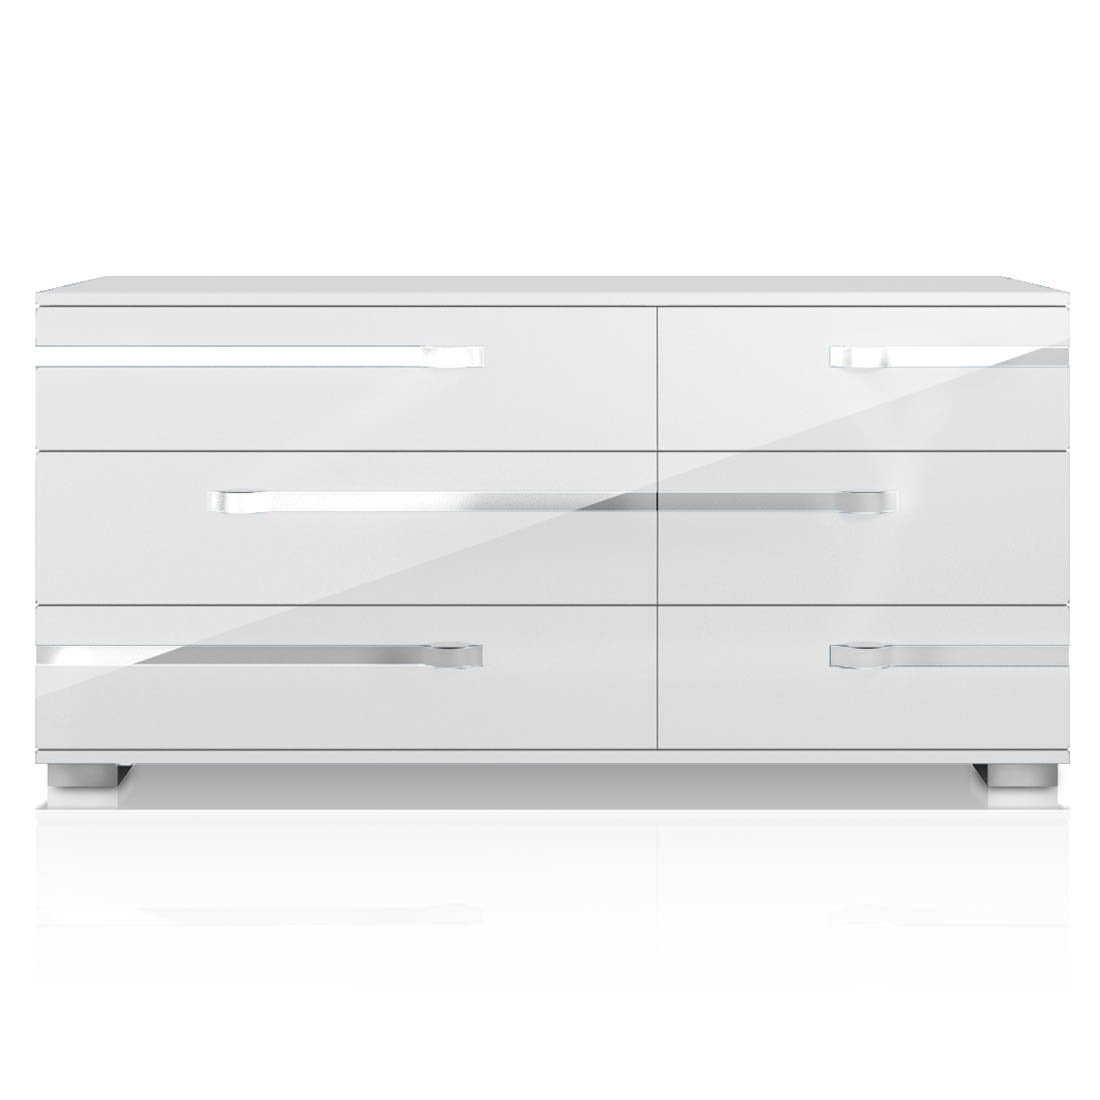 Lustro Double Dresser in White High Gloss Chrome Foil Trim